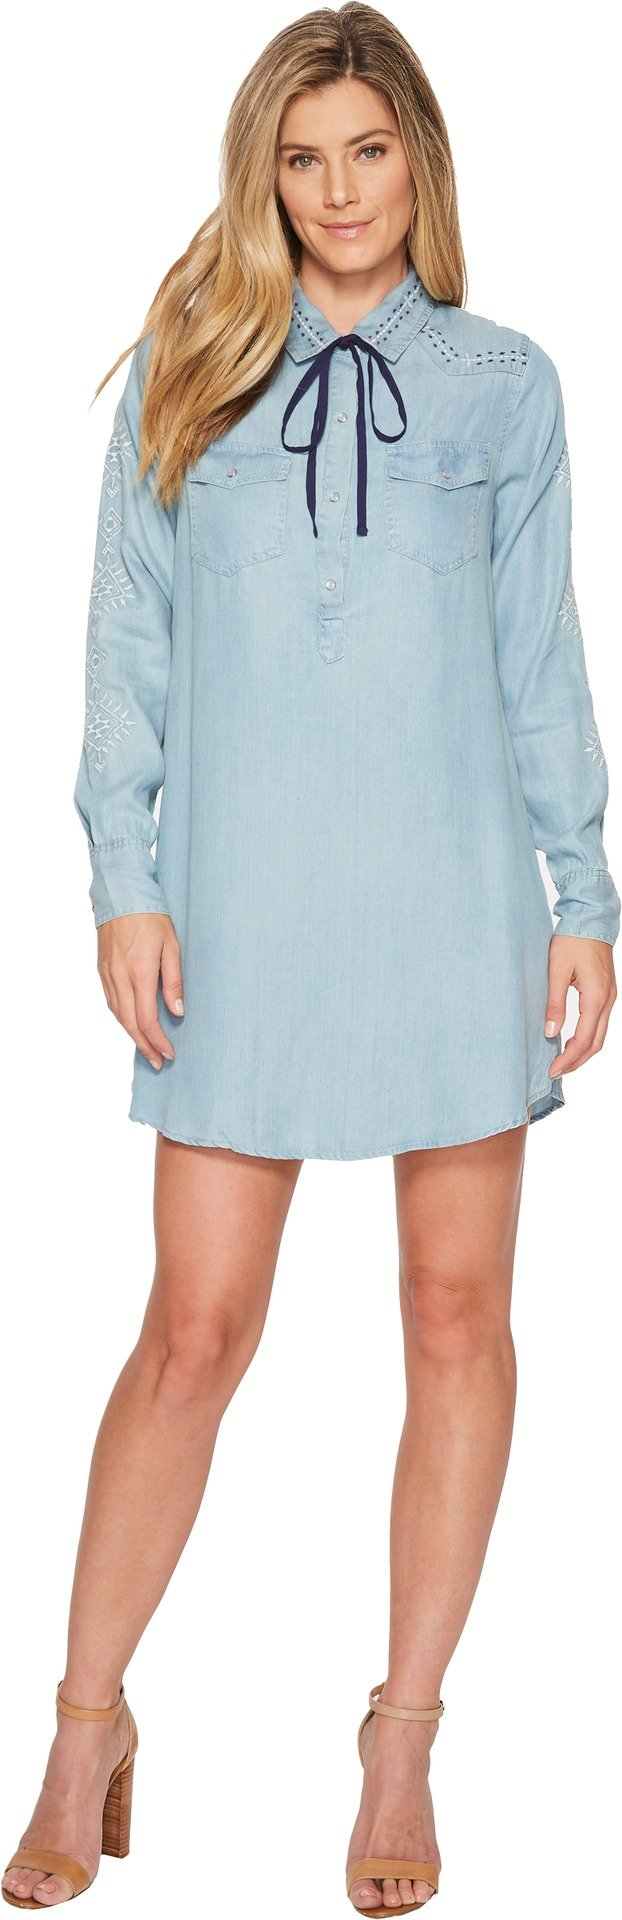 Miss Me Women's Embroidered Pearl Snap Denim Dress Indigo Small